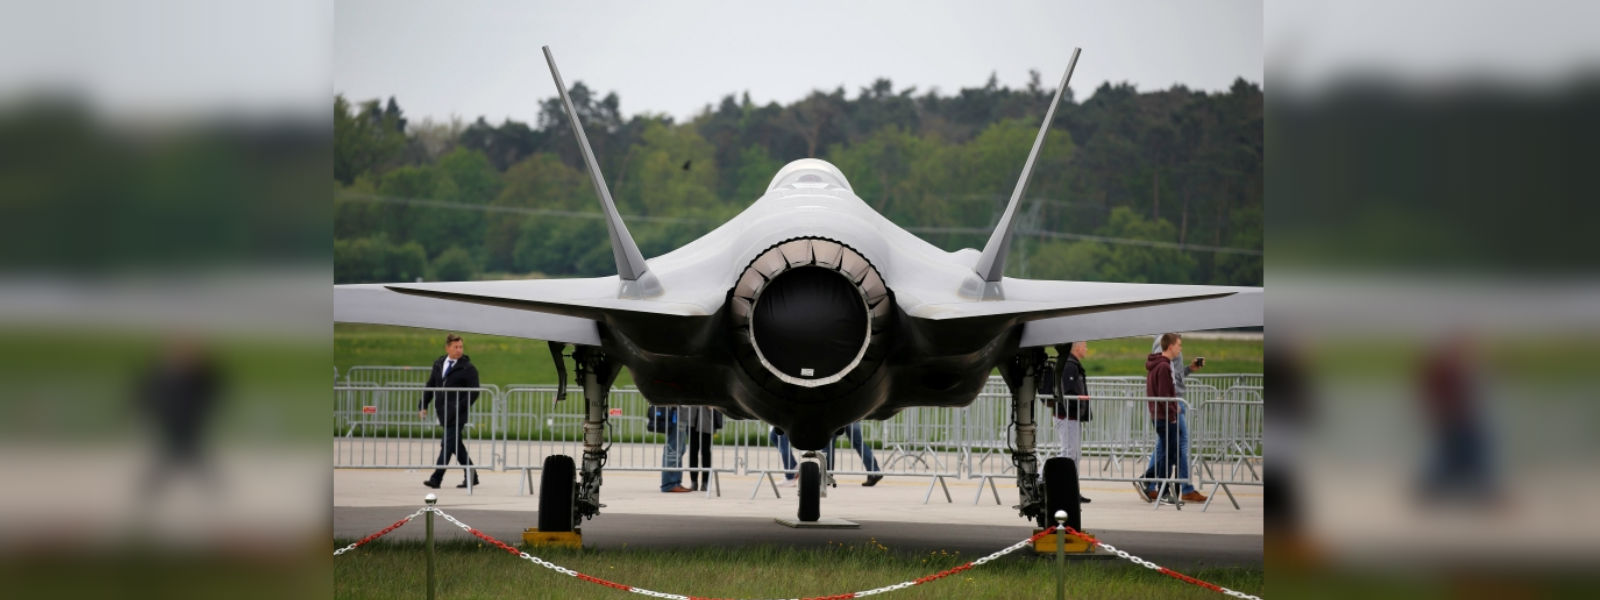 North Korea calls South Korea's F-35 jet purchases 'extremely dangerous action'